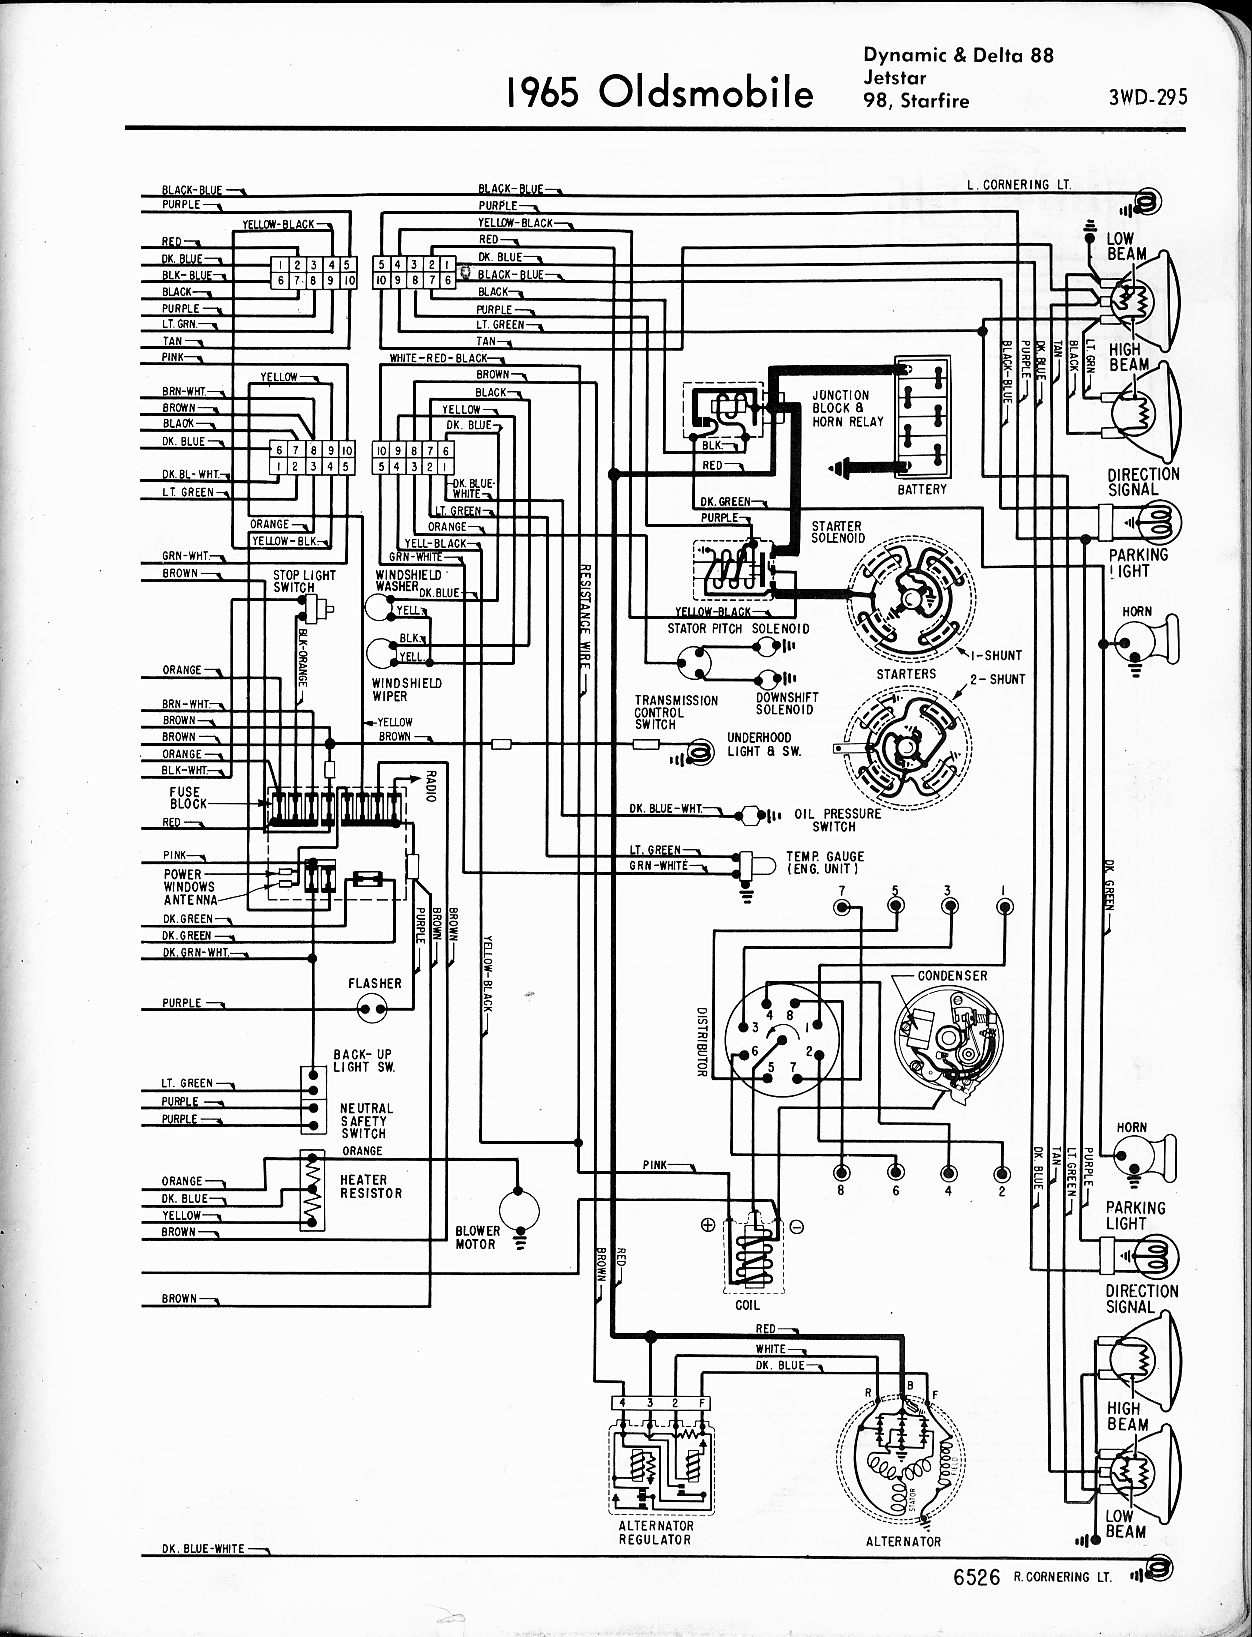 oldsmobile wiring diagrams the old car manual project 1965 dynamic 88 delta 88 jetstar 98 starfire right page